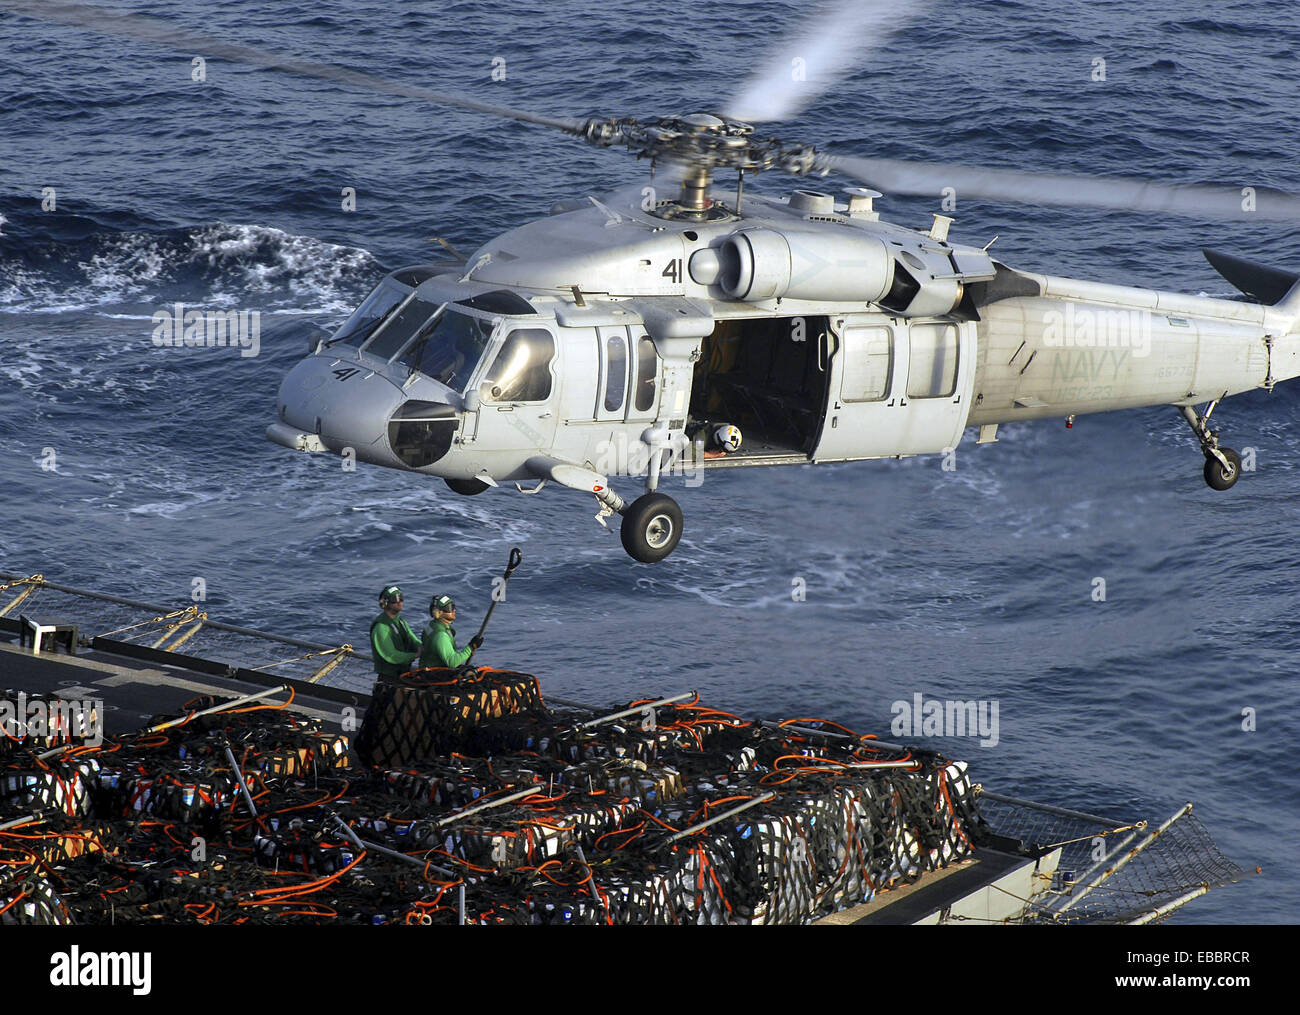 ARABIAN SEA (April 14, 2007) - Personnel from USNS Bridge (T-AOE 10) attach pallets of supplies to an MH-60S Seahawk, - Stock Image